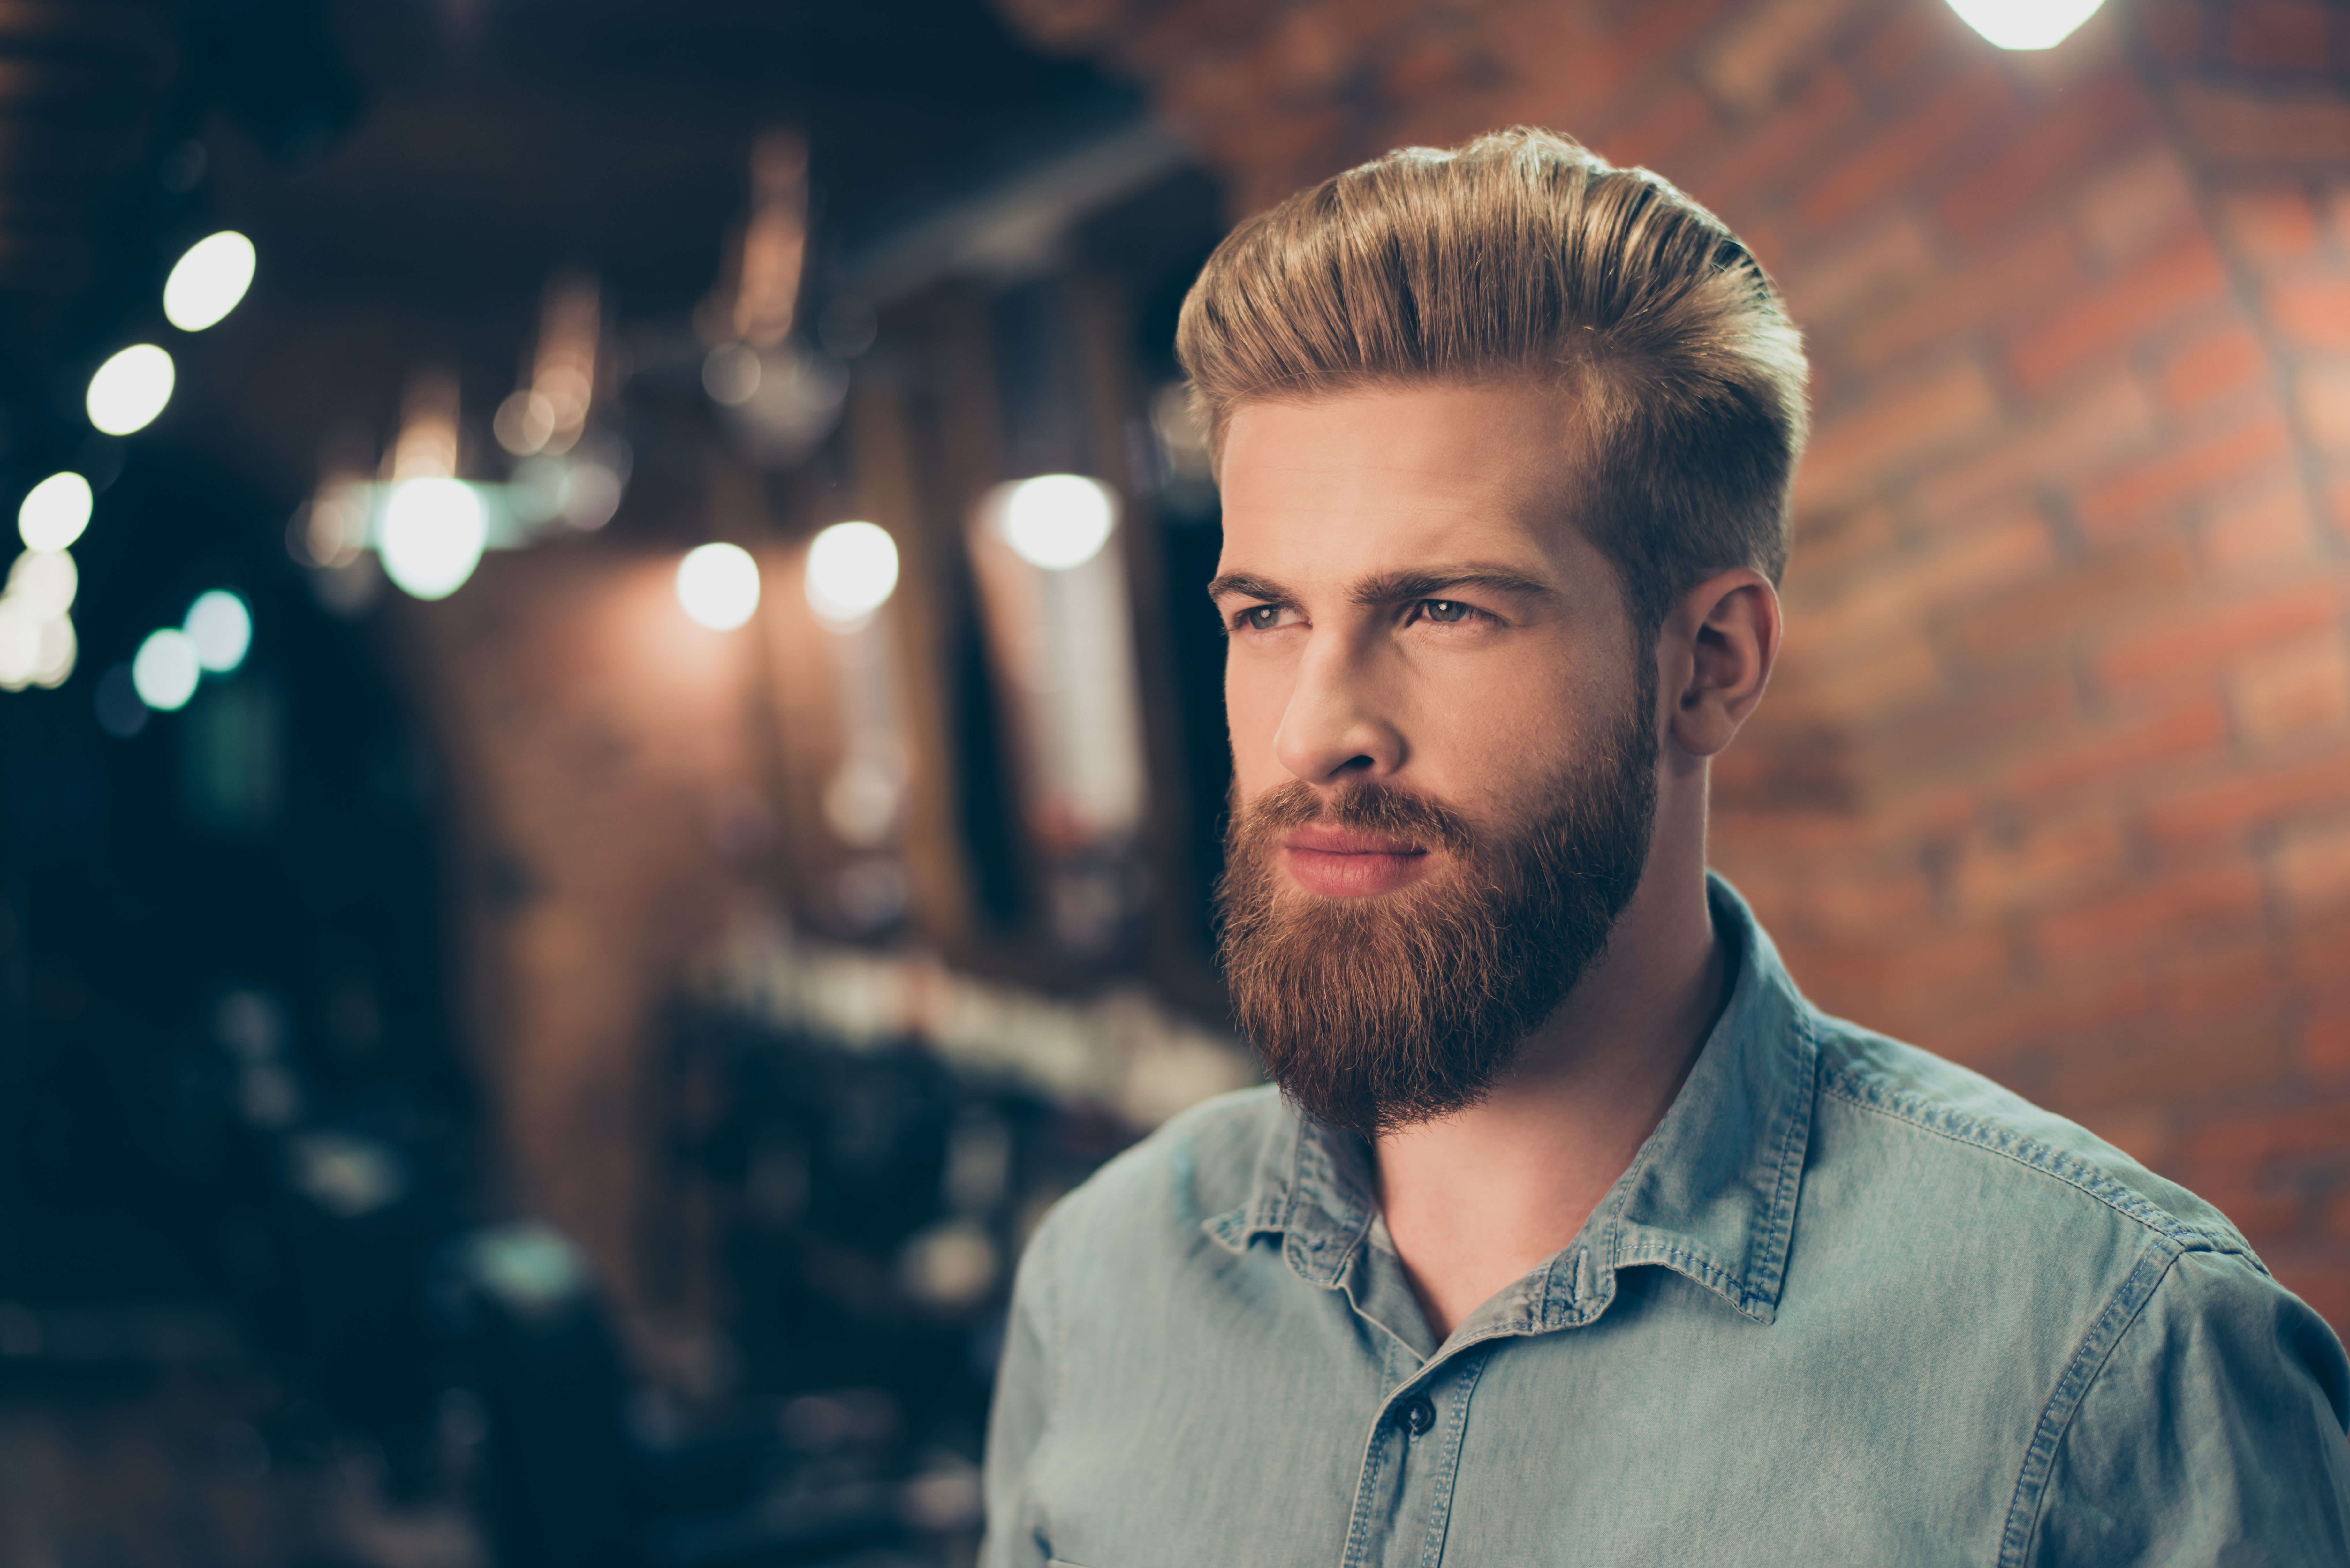 Swell Women Are More Attracted To Men With Beards Study Reveals Aol Schematic Wiring Diagrams Phreekkolirunnerswayorg